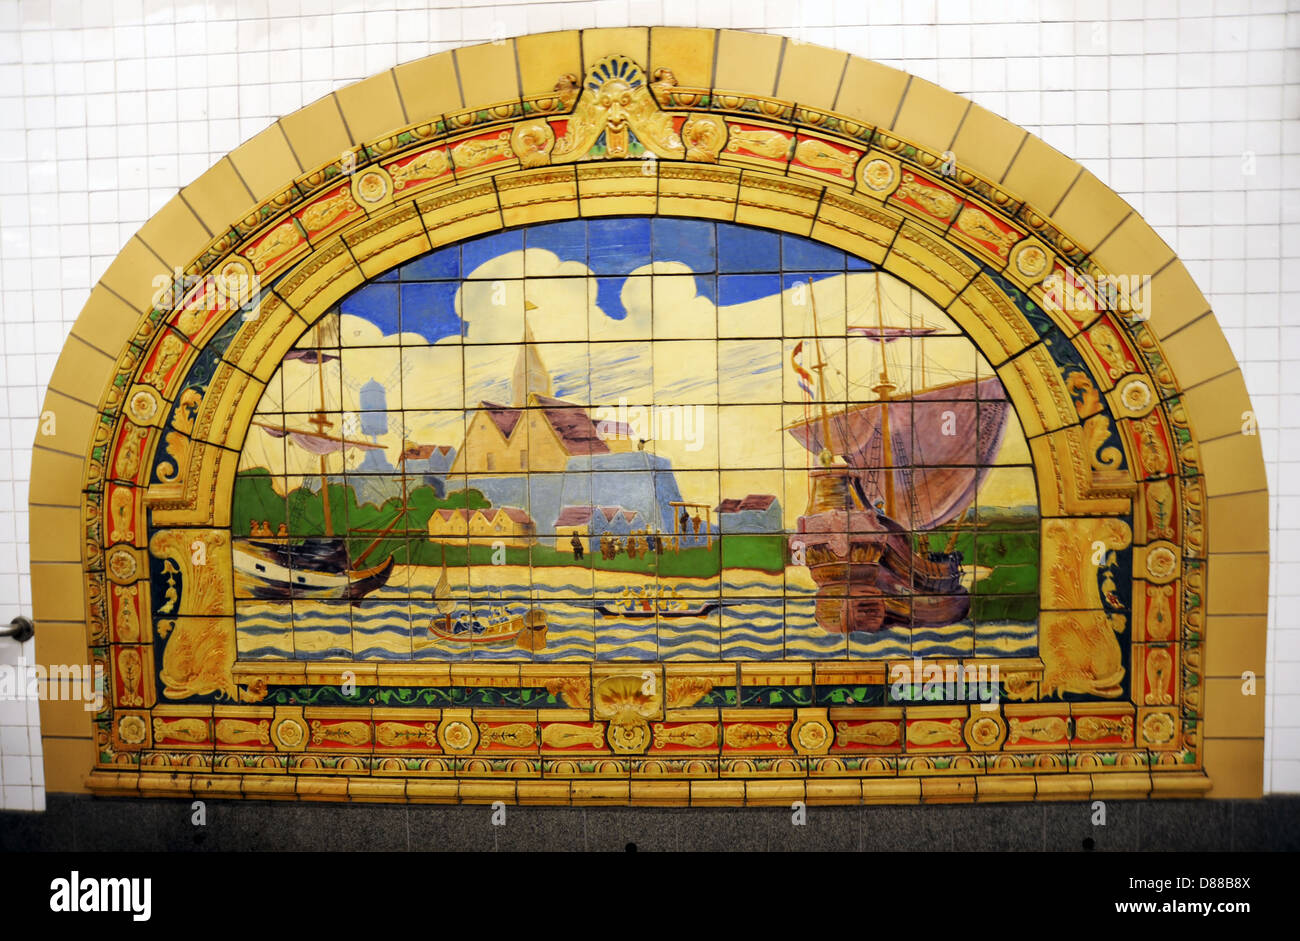 New York CIty Subway system decorated colorful ceramic